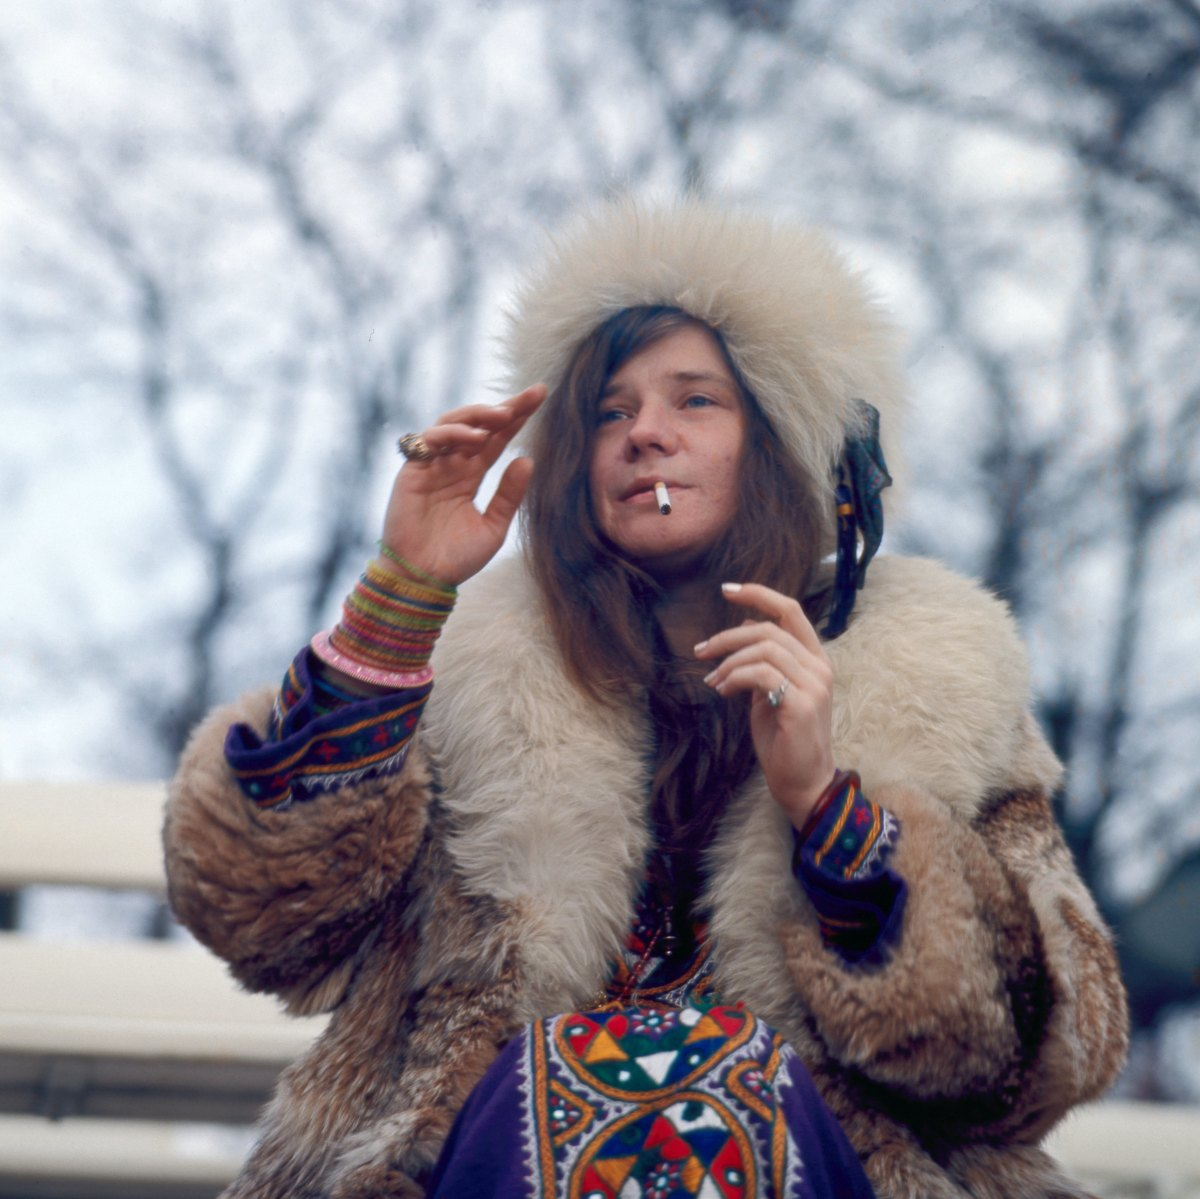 The 27 Club: When rocker Janis Joplin died of an overdose of heroin and alcohol in October 1970, she left money in her will for a party to be thrown in the event of her death. Brownies laced with hashish were passed around for mourners to enjoy.